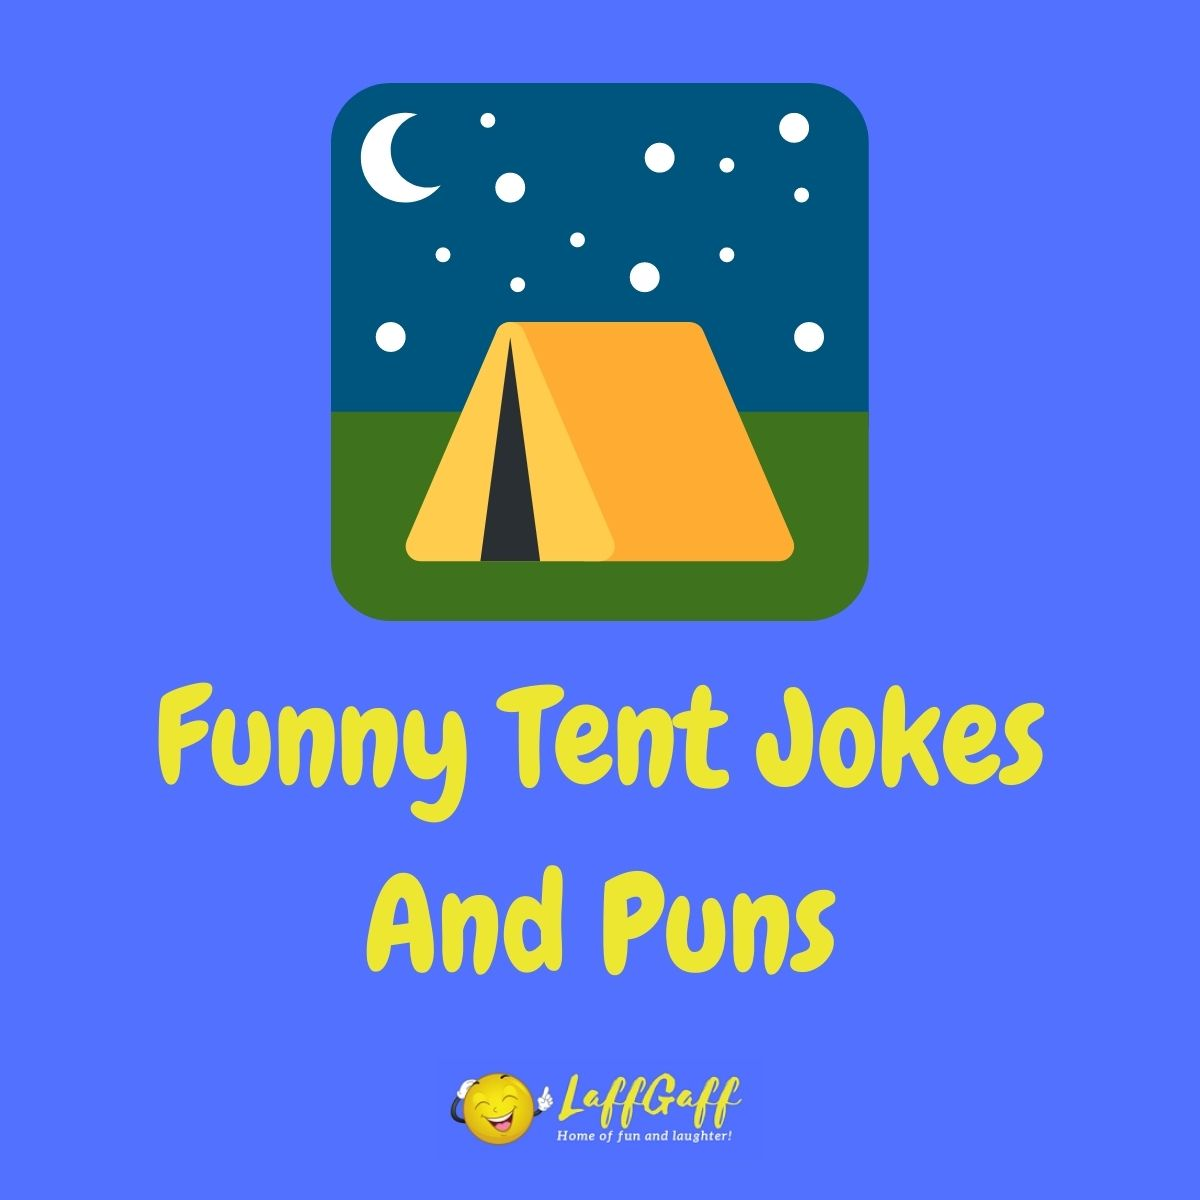 Featured image for a page of funny tent jokes and puns.